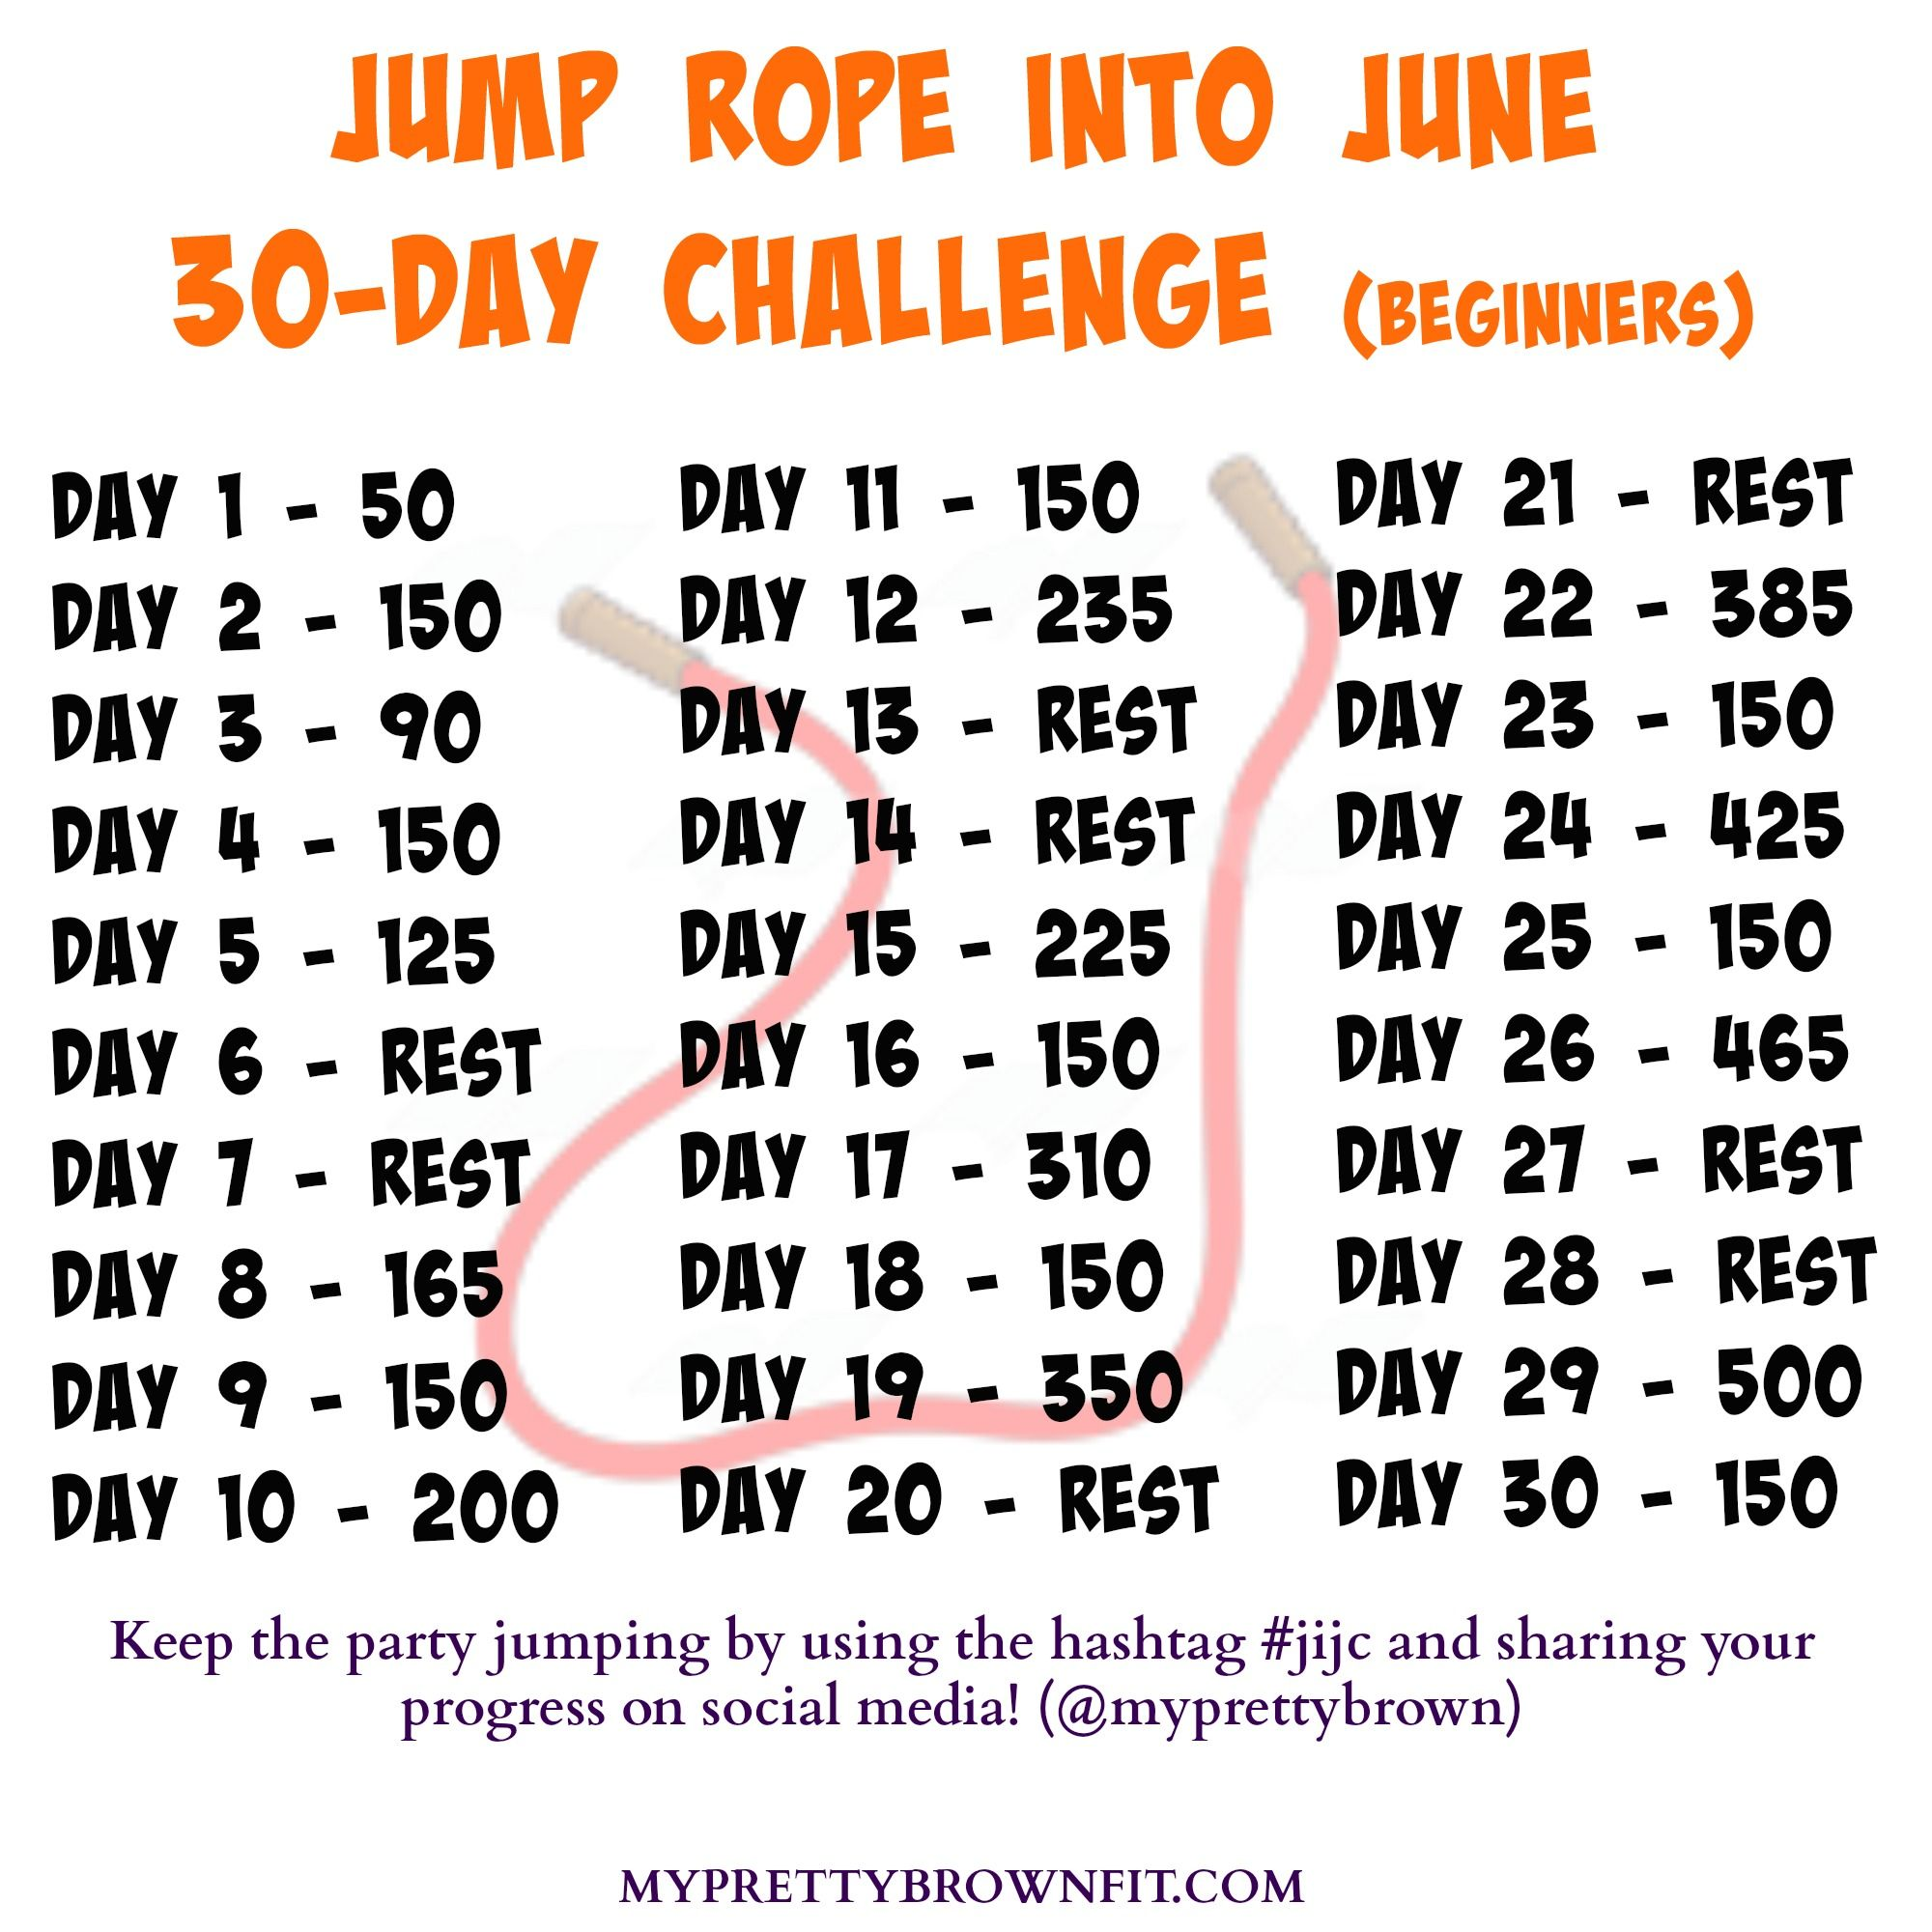 Carrie Underwood Swears By This Jump-Rope Ladder Workout For Iconic Legs Carrie Underwood Swears By This Jump-Rope Ladder Workout For Iconic Legs new pics